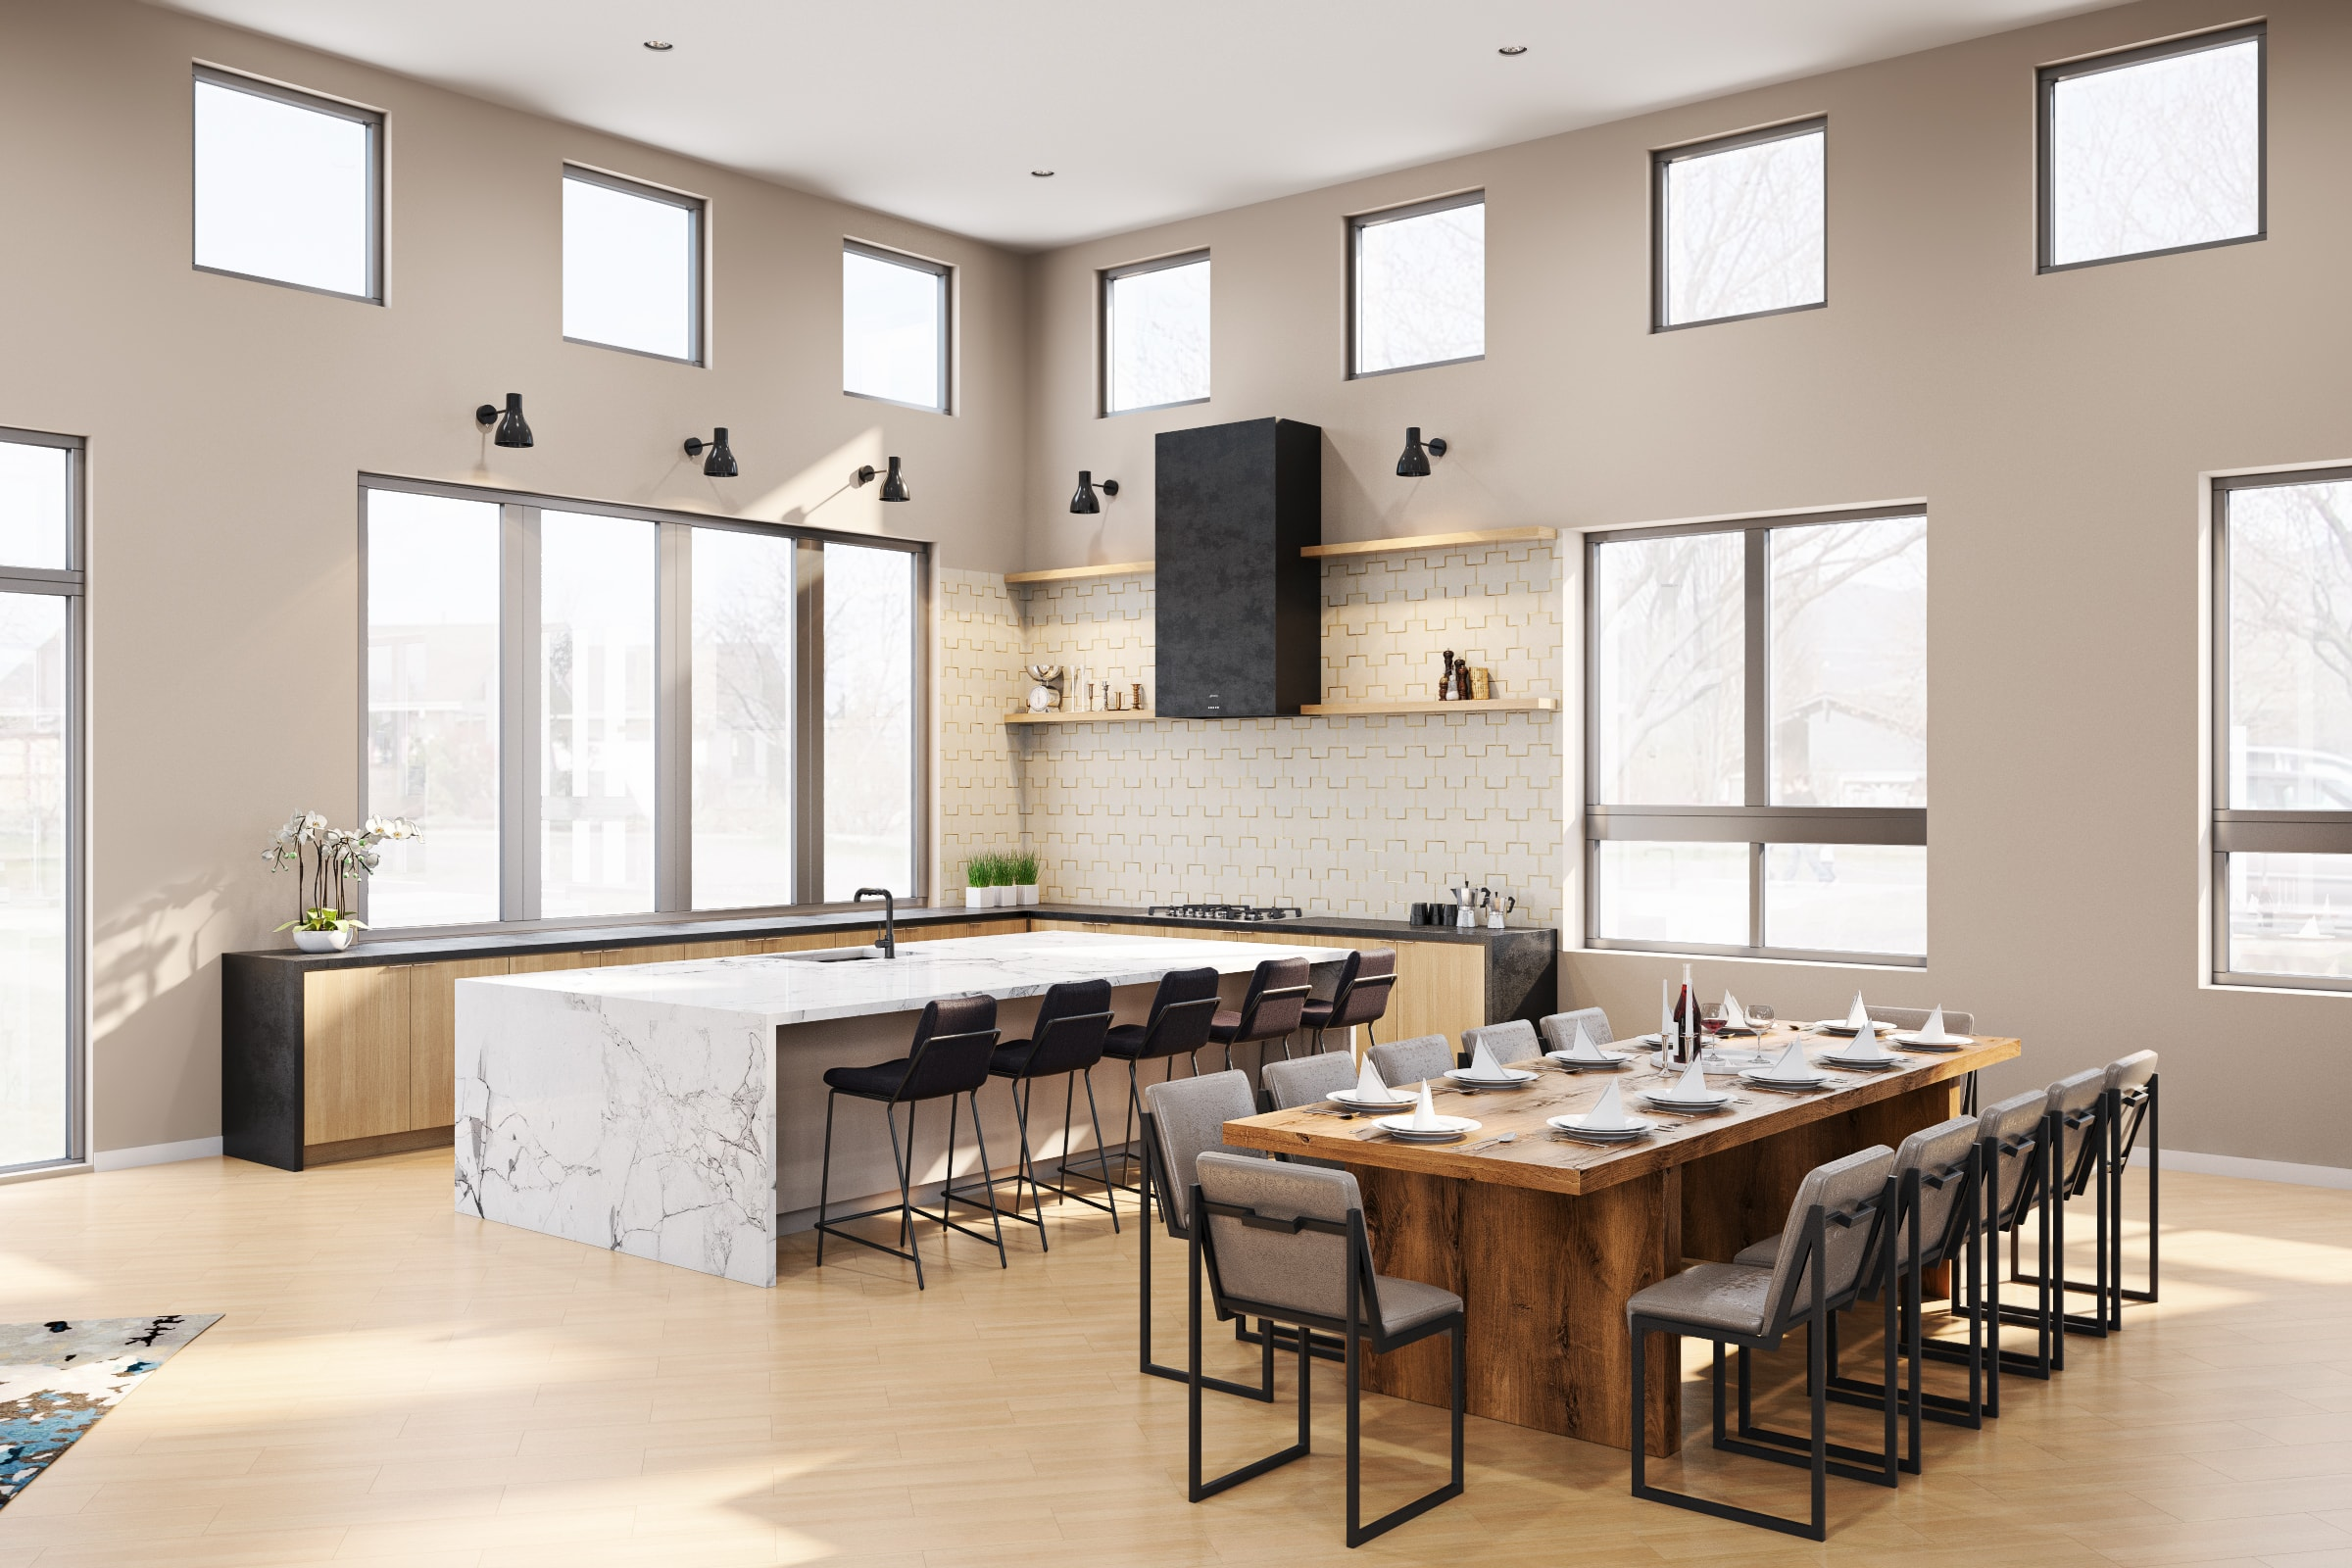 Interior of large, open, shared kitchen area with dining table and countertop seating